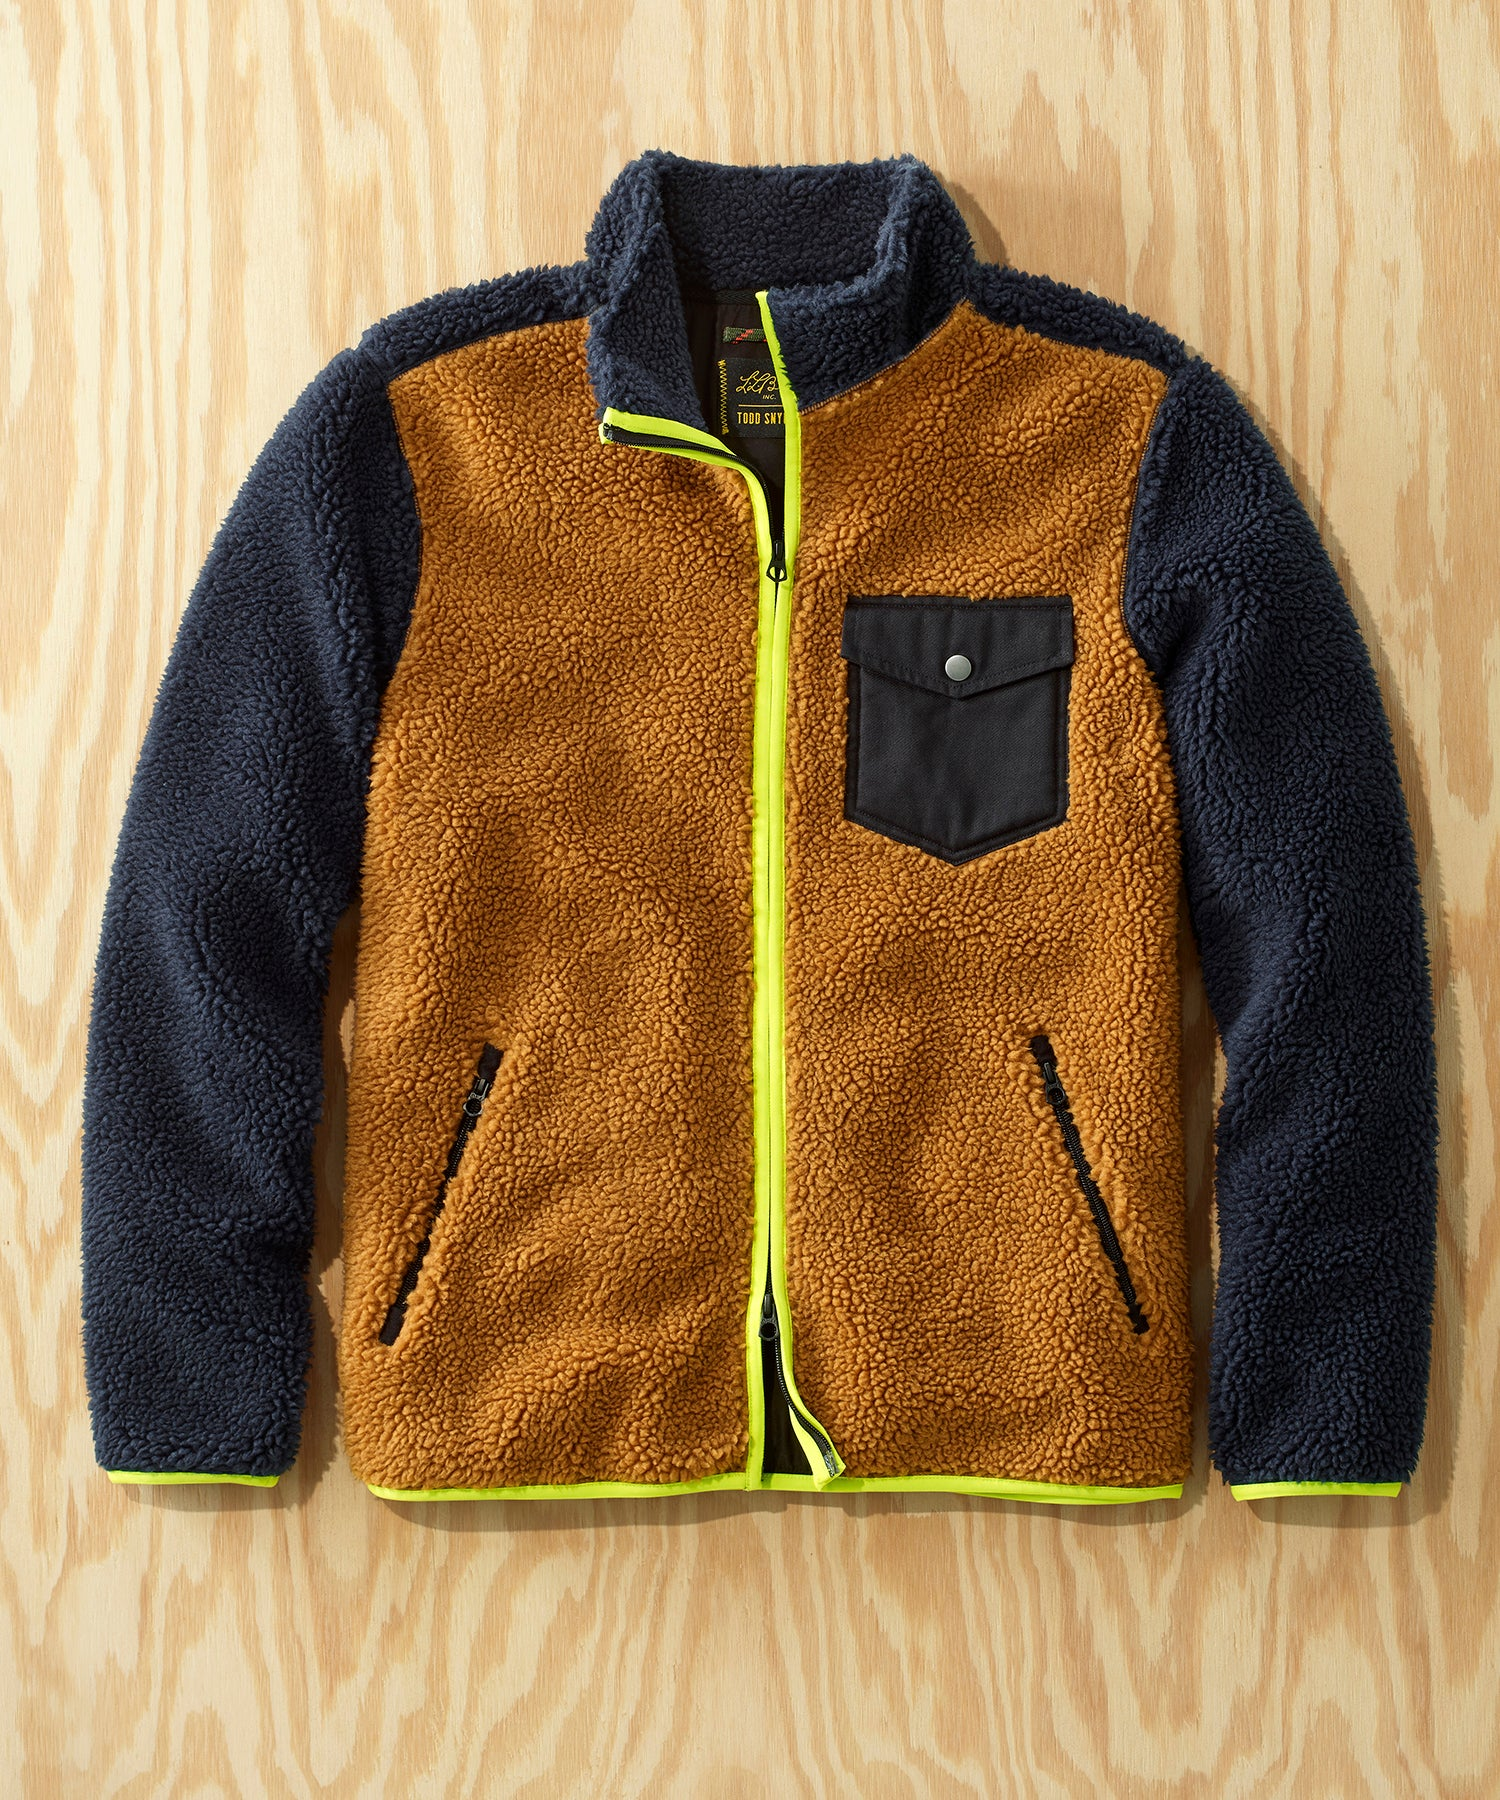 L.L.Bean x Todd Snyder Hi-Pile Sherpa Zip-Front Jacket in Colorblock Navy